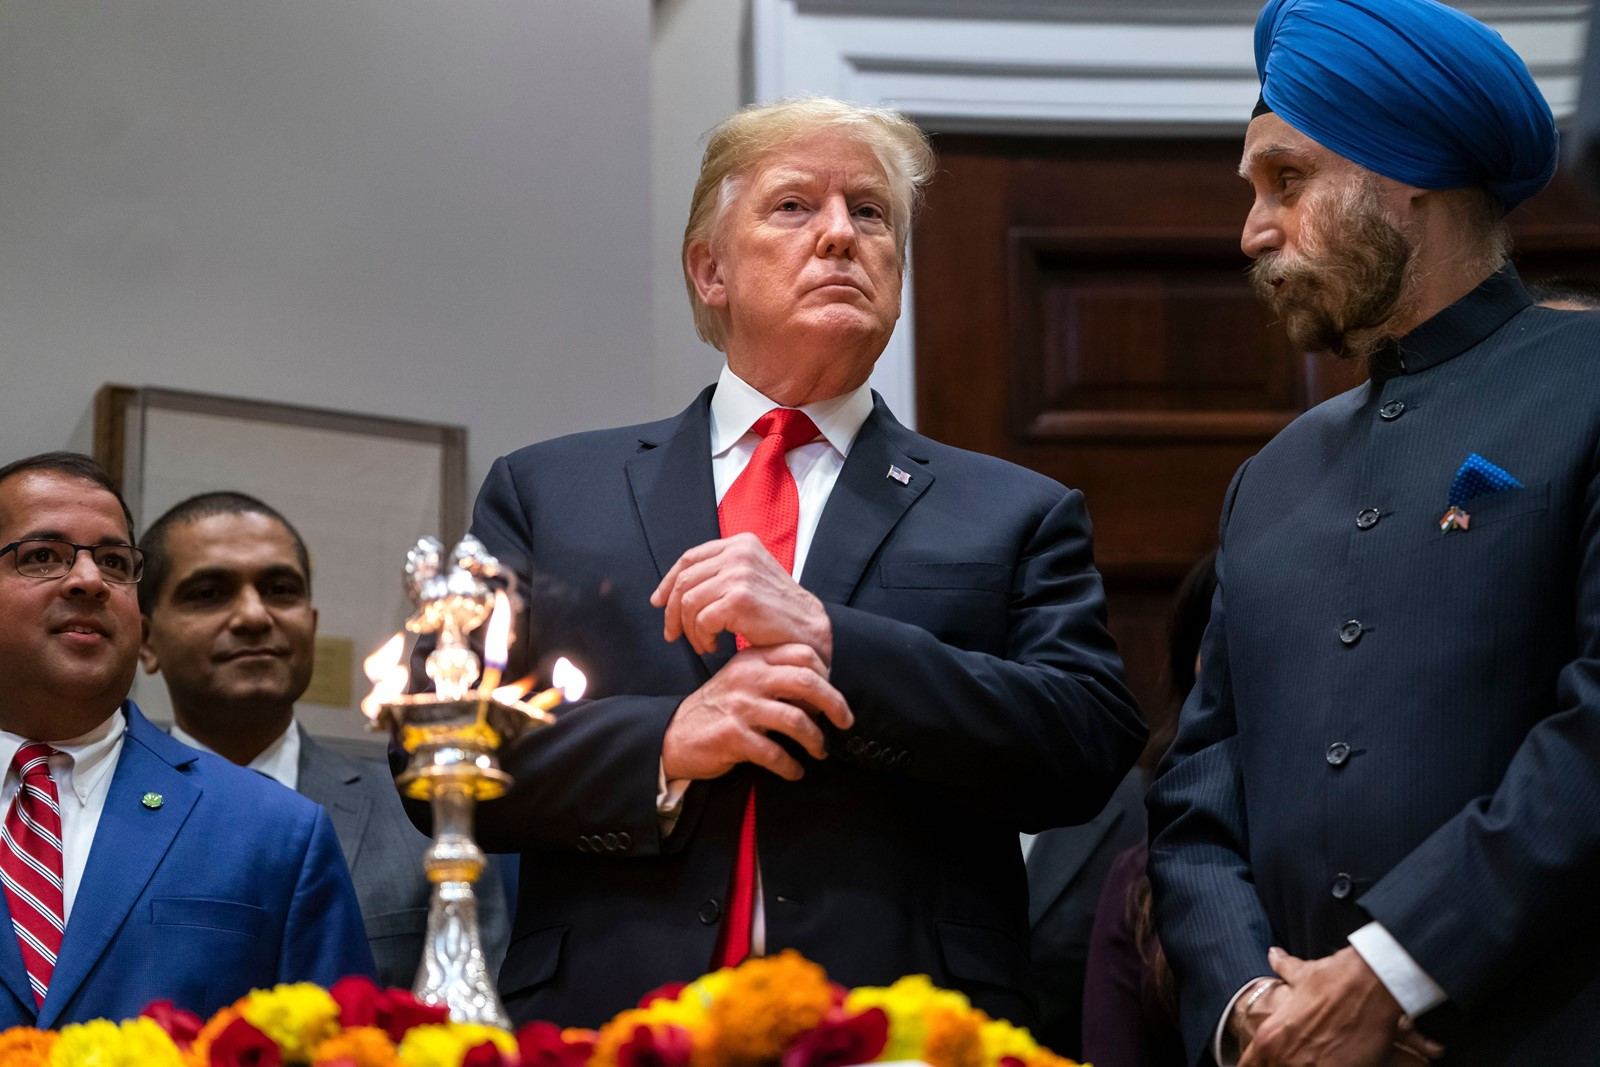 President Donald J. Trump spoke briefly but did not respond to reporters' shouted questions at his only public appearance on Tuesday, at a short White House ceremony for the start of Diwali, the Hindu festival of lights. — Photograph: Jim Lo Scalzo/European Pressphoto Agency/Shutterstock.